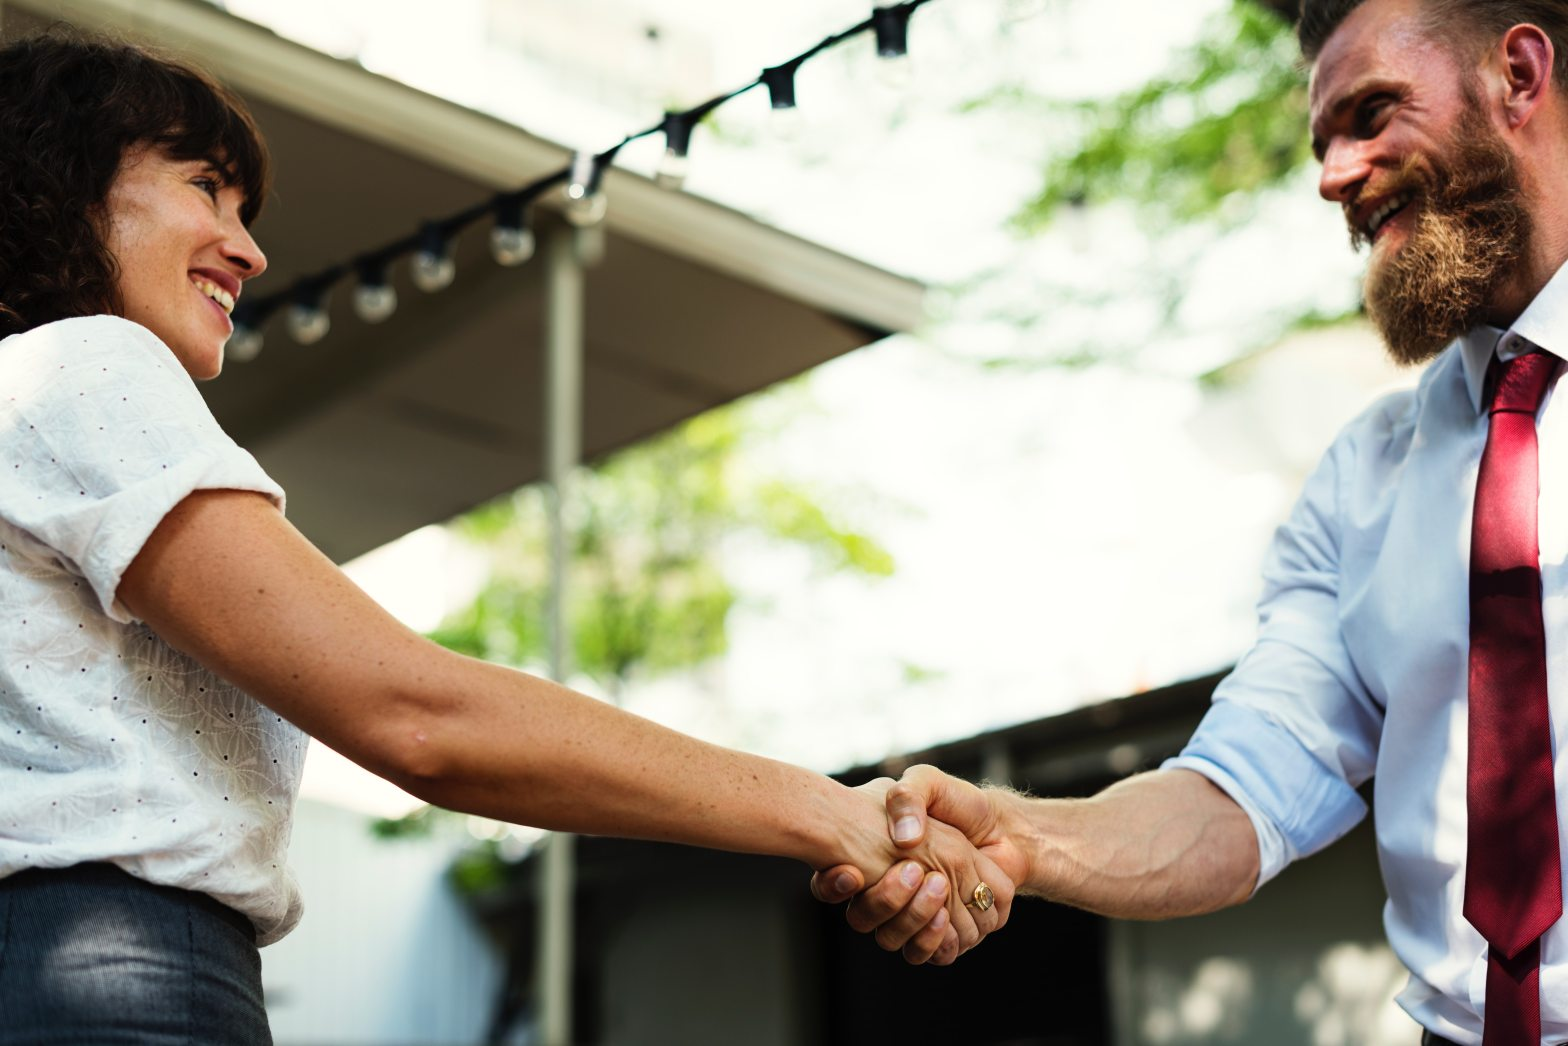 man and woman shake hands after negotiating